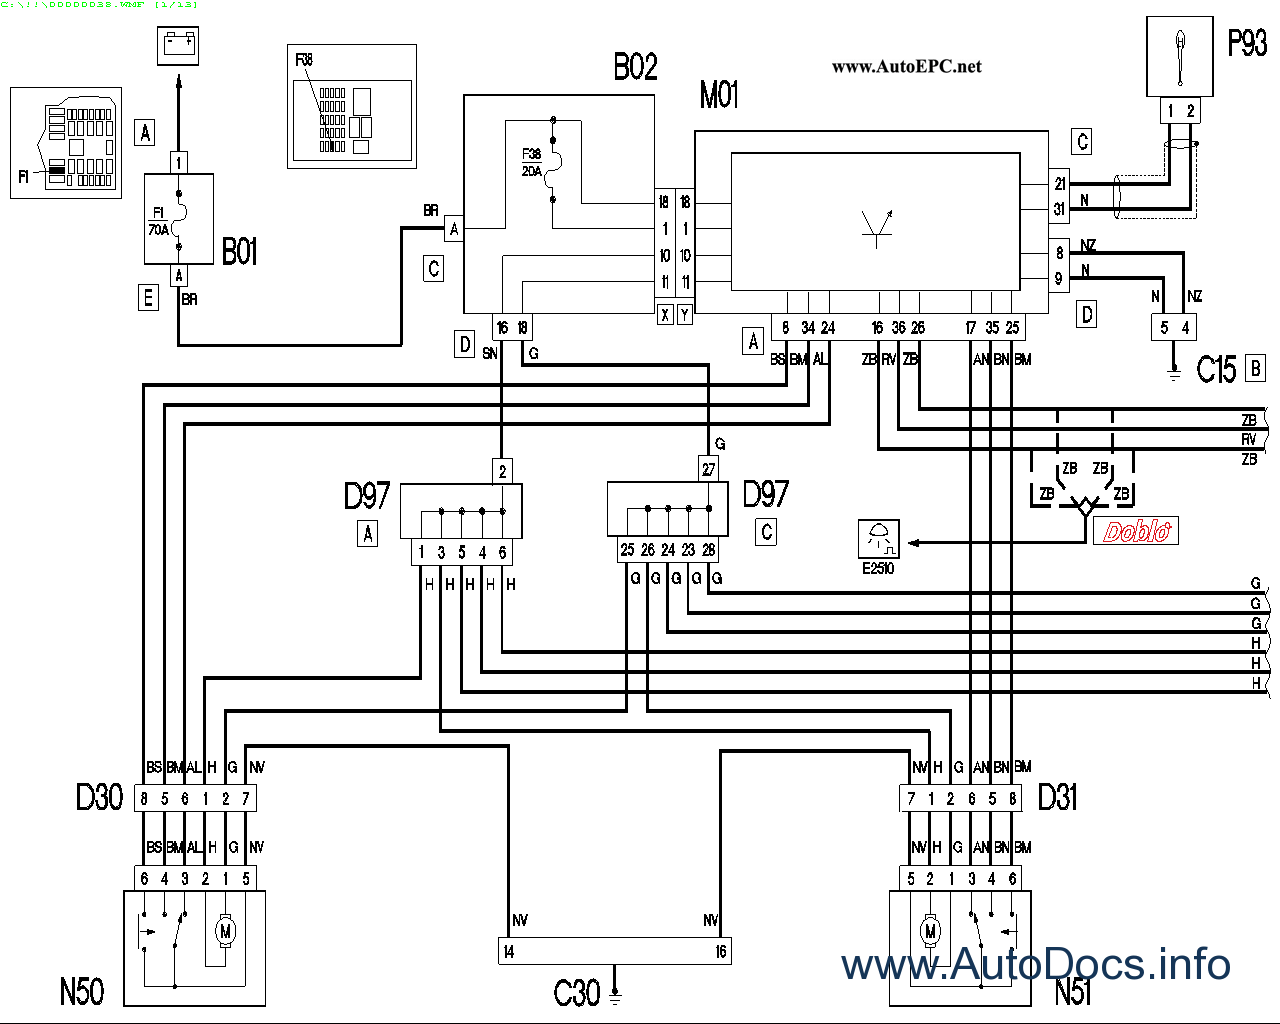 Safc Wiring Diagram For 91 240sx - Wiring Diagram